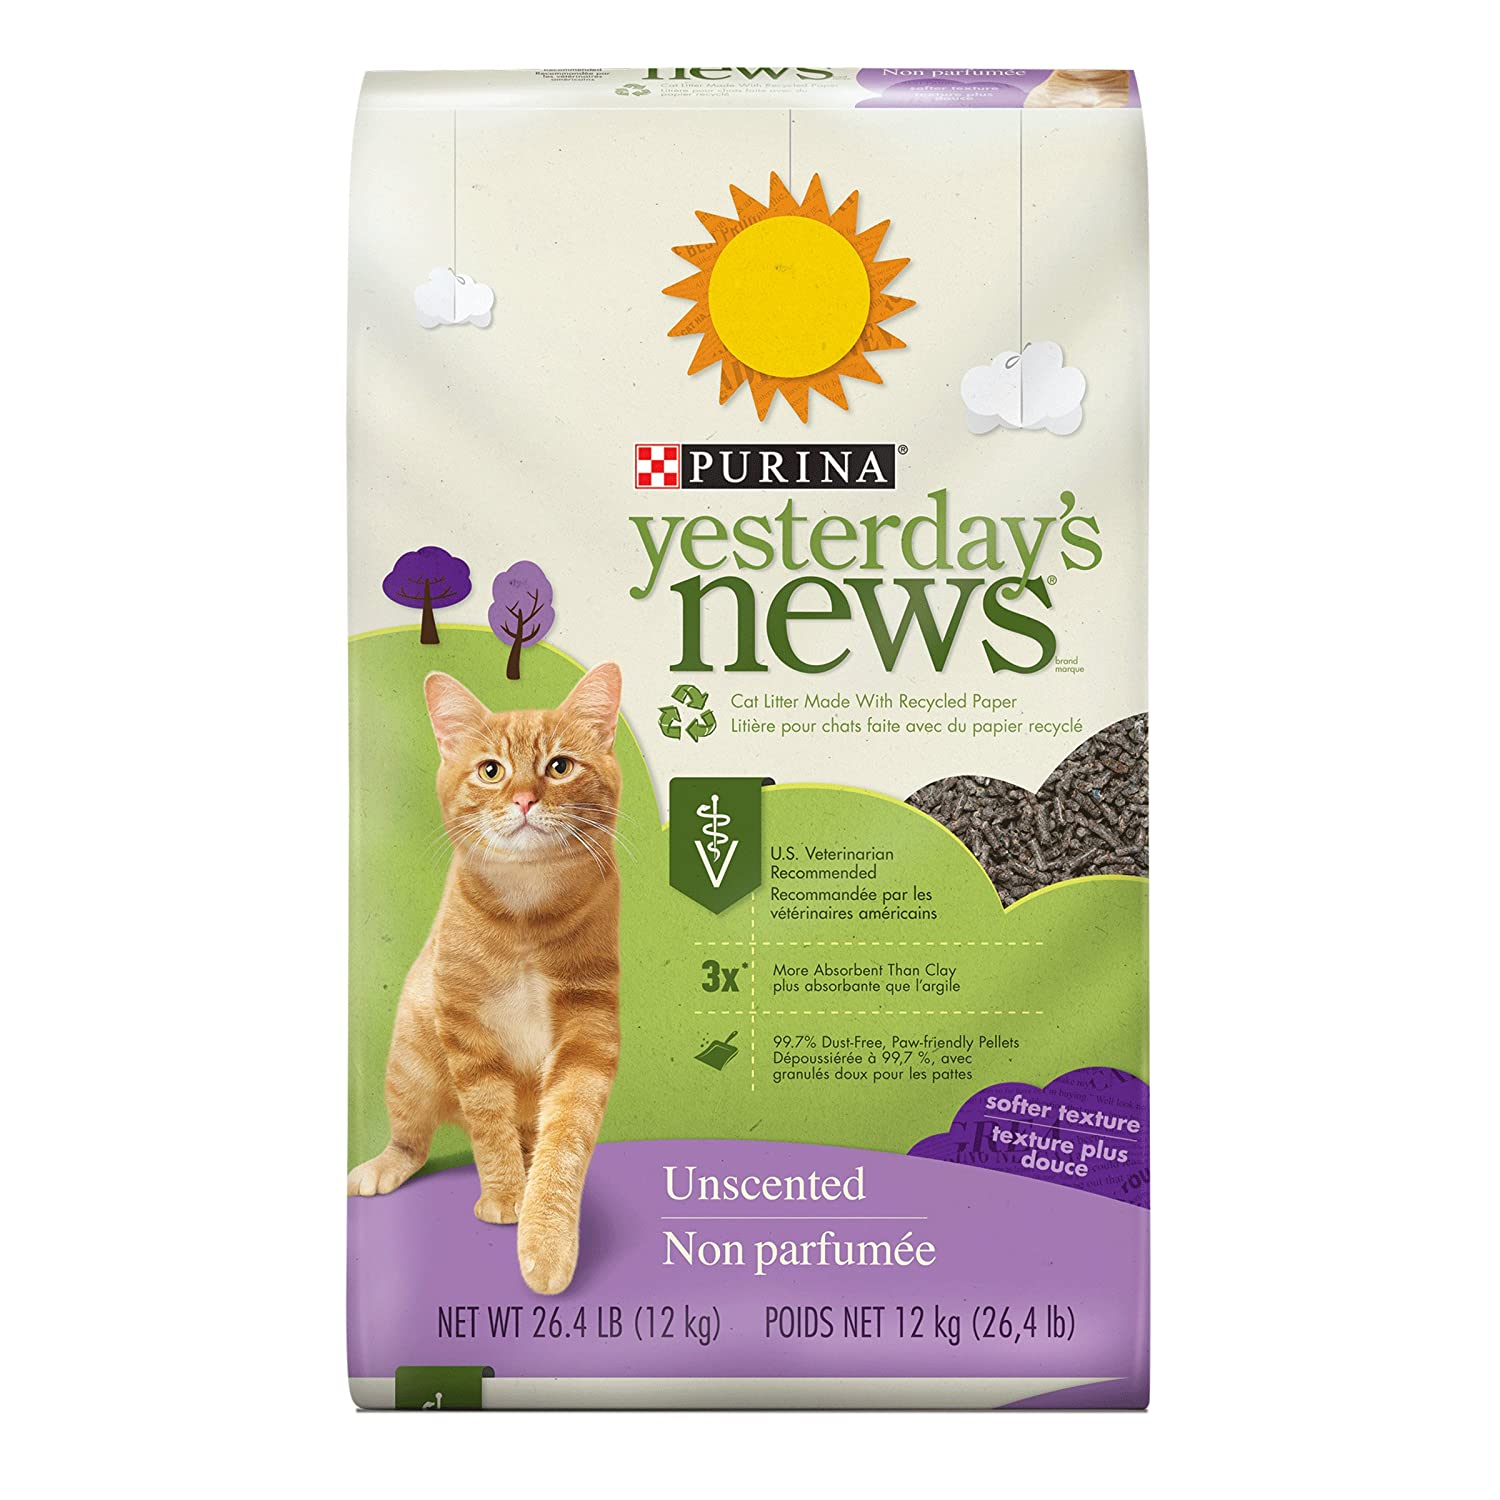 Yesterday's News Purina Unscented Softer Texture Cat Litter - 26.4 lb. Bag